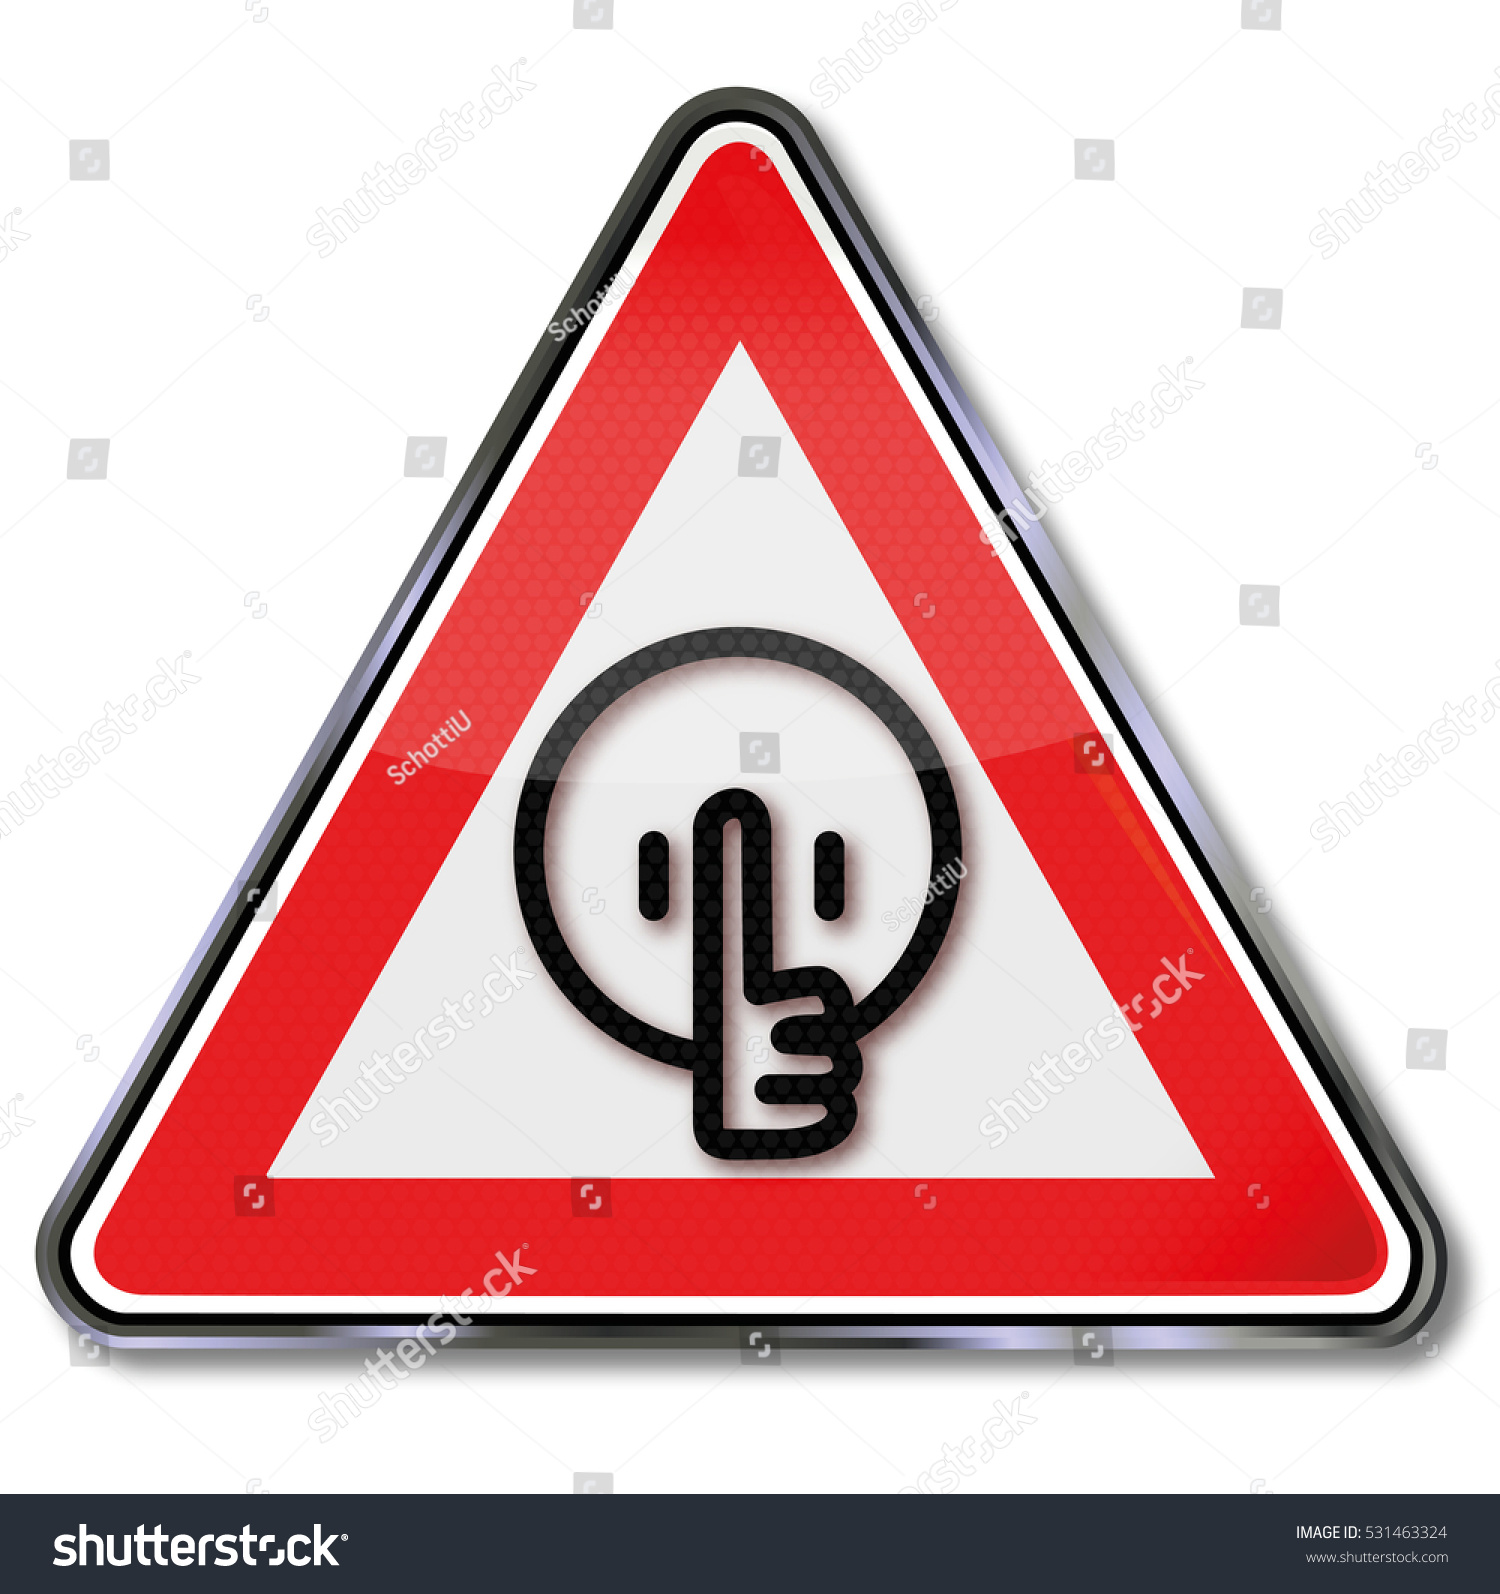 Silence please be quiet stock illustration 531463324 shutterstock silence please and be quiet buycottarizona